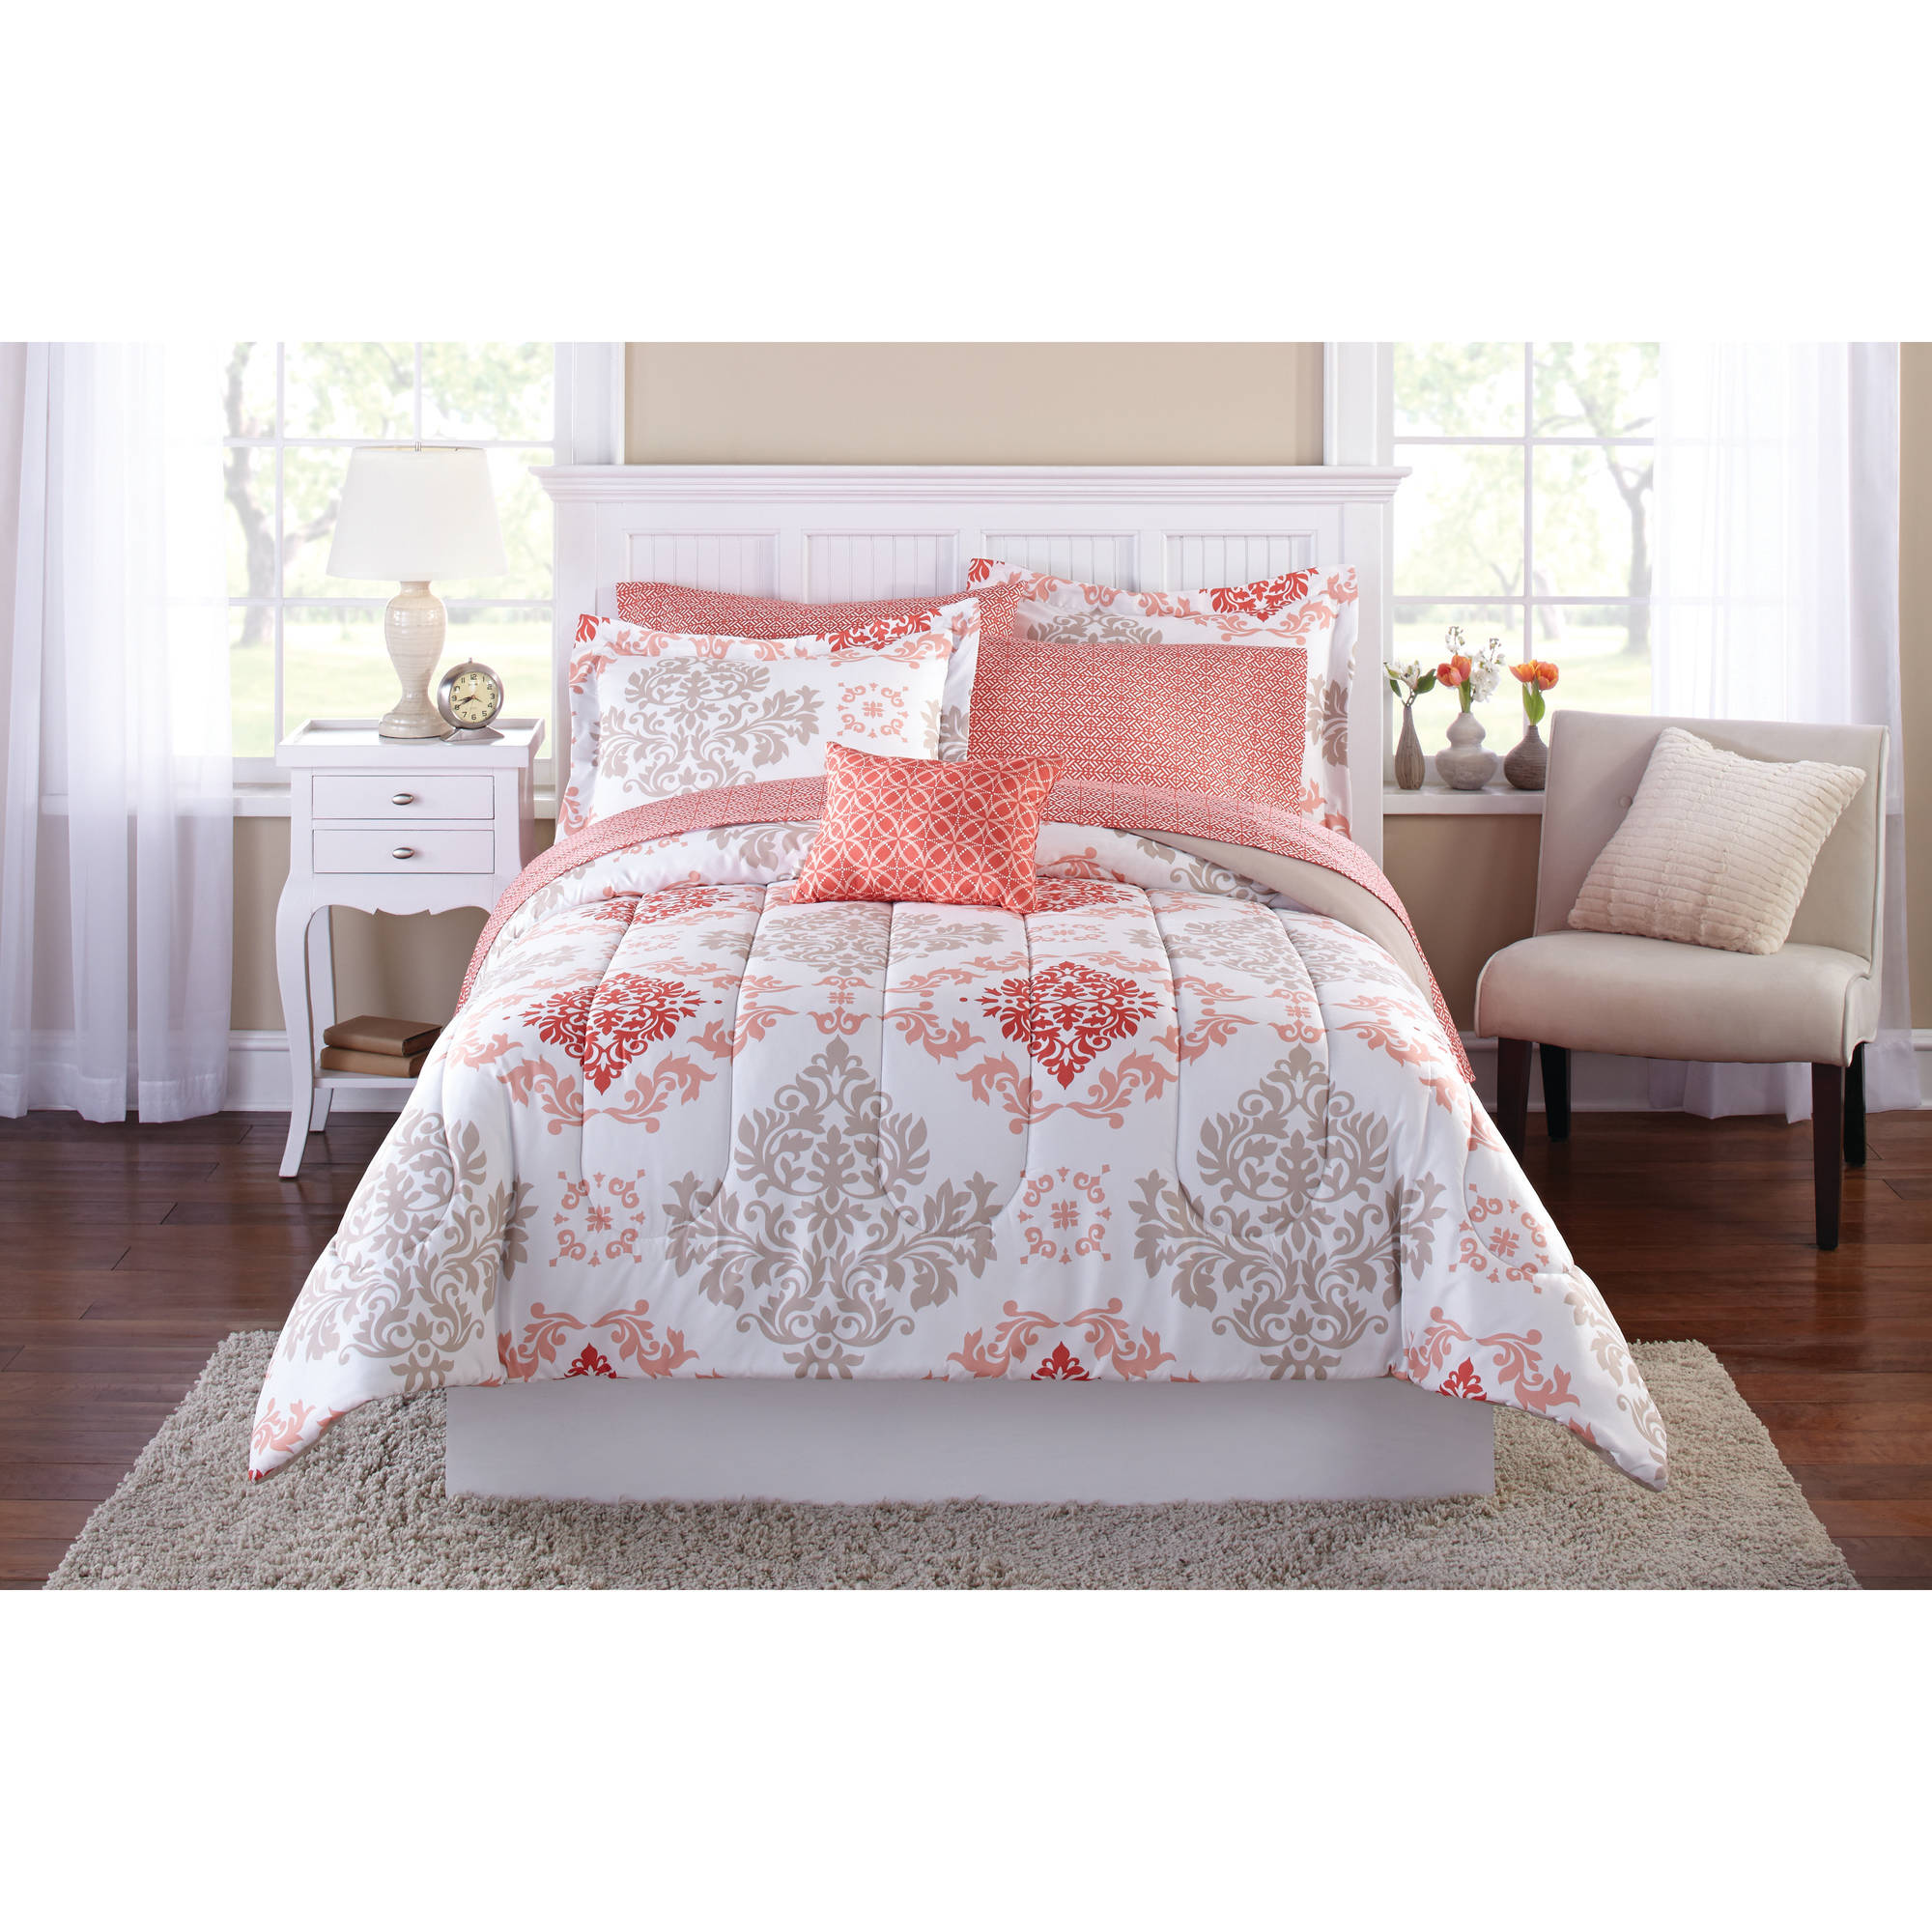 Bedroom gorgeous queen bedding sets for bedroom - Bed bath and beyond bedroom furniture ...